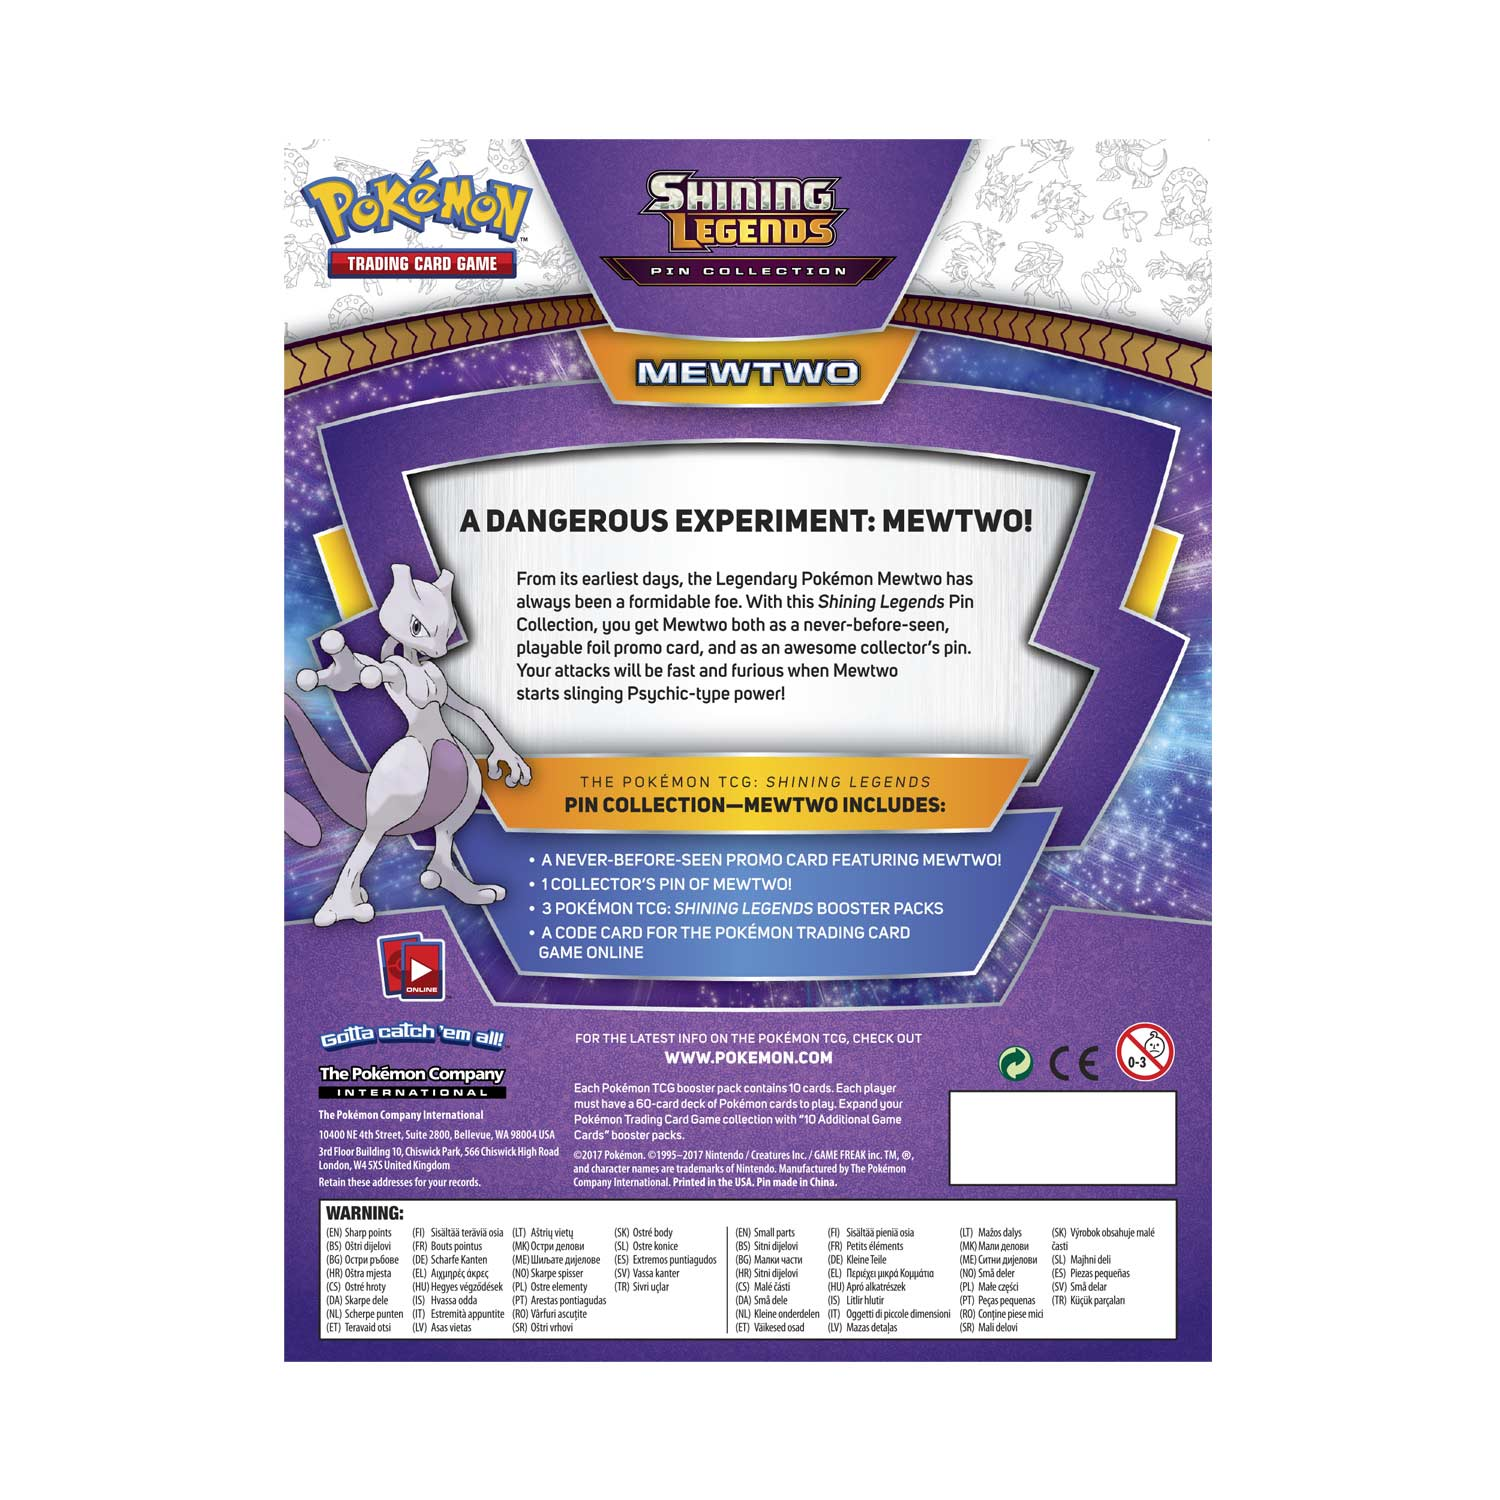 Pokémon TCG: Shining Legends Pin Collection—Mewtwo